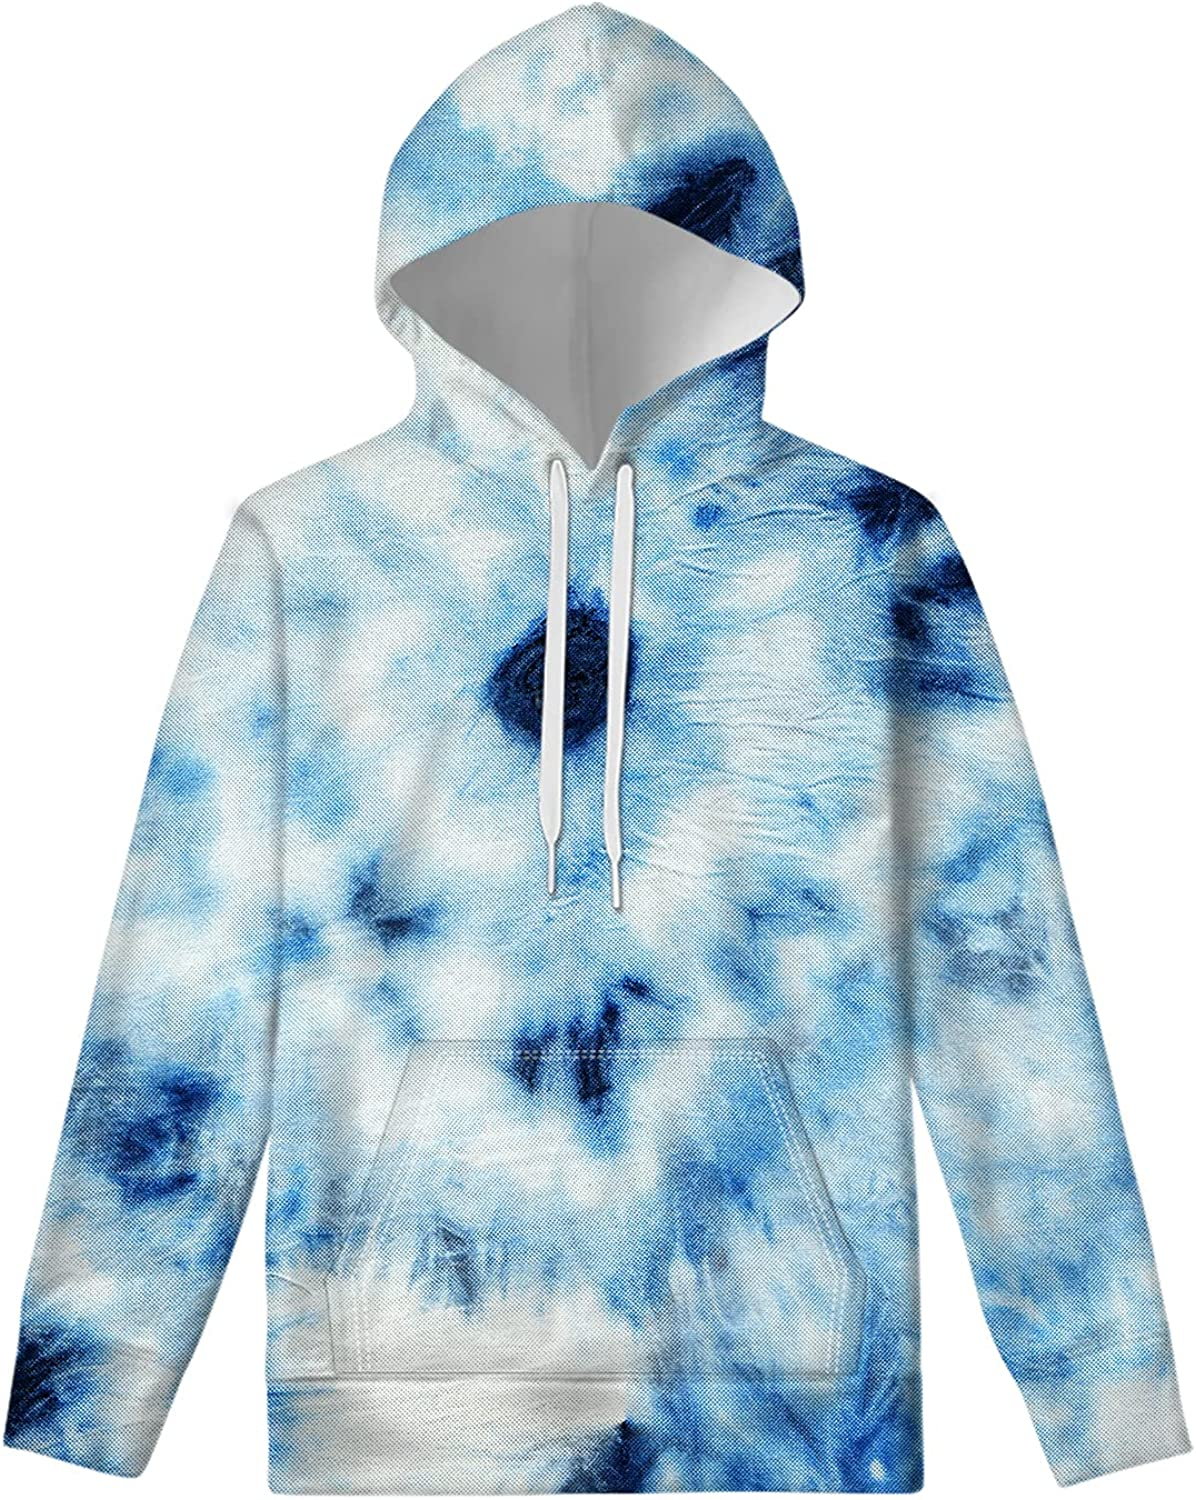 KUILIUPET Hoodies Pullover Tops Sweatshirt for Girls Boys Juniors Kids Loose Sweater Long Sleeve with Pockets